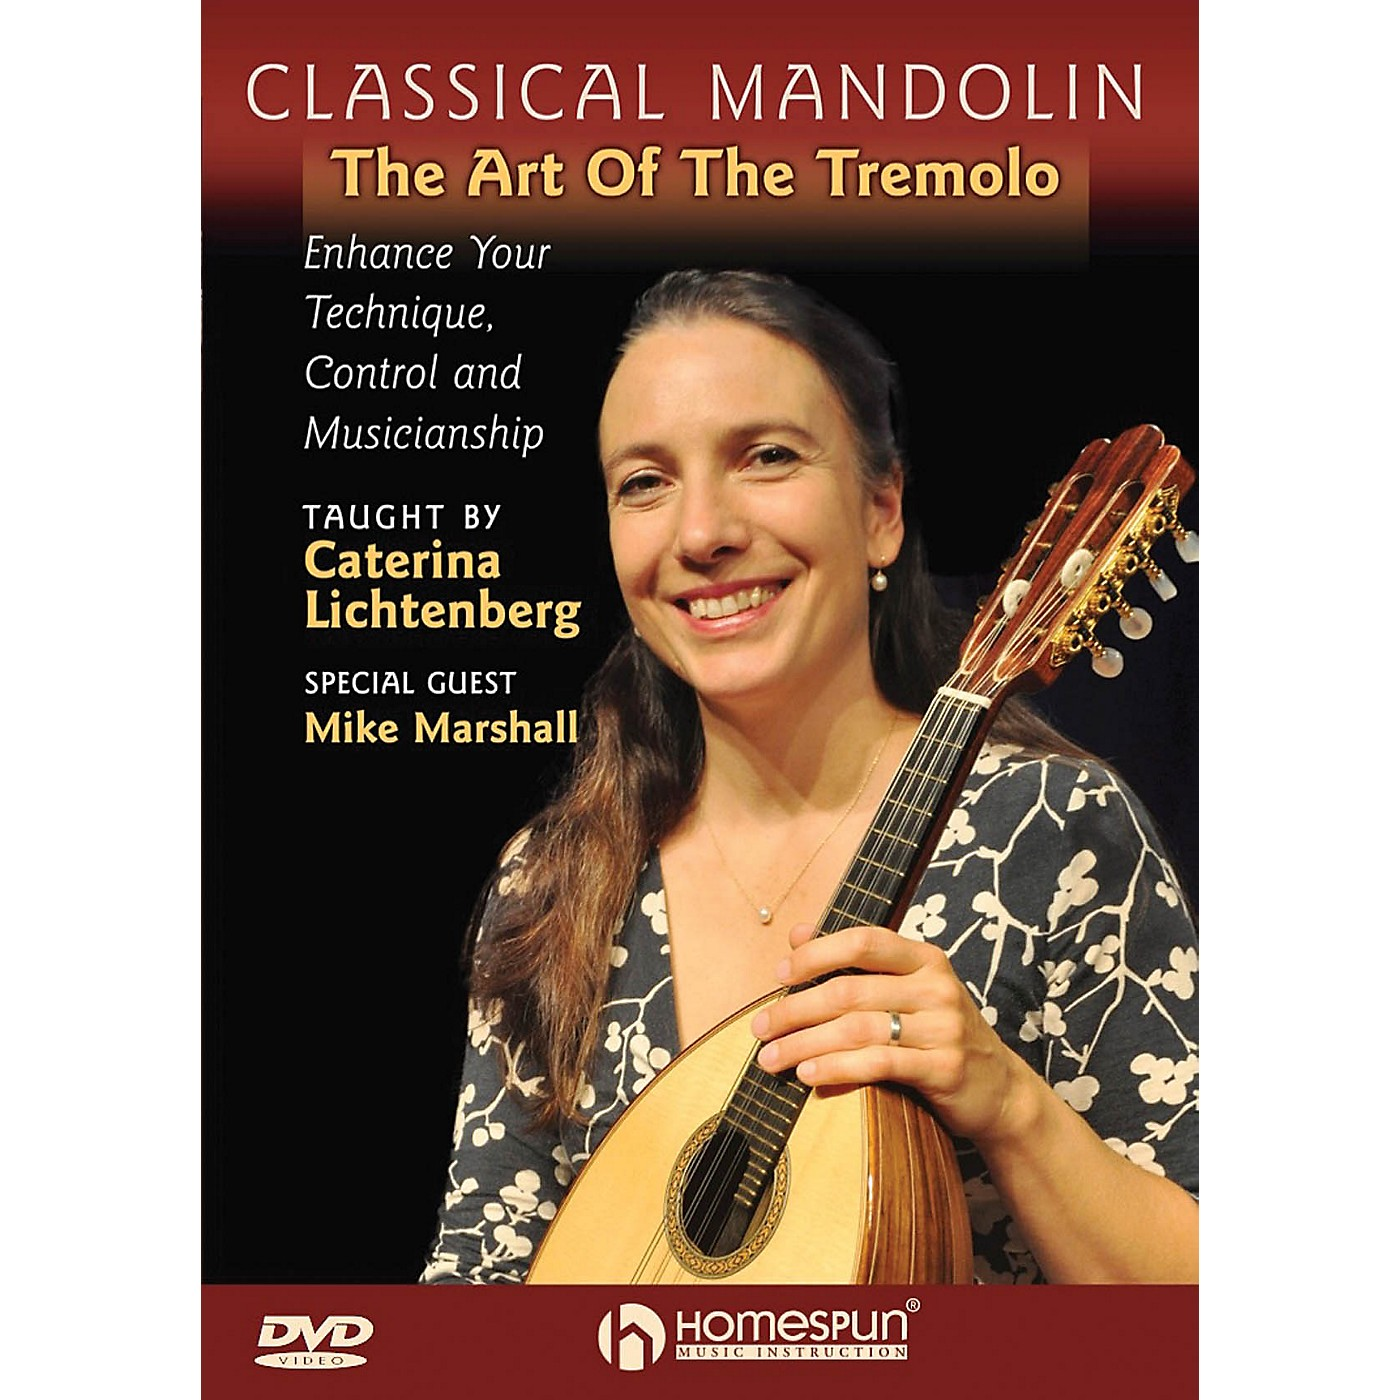 Homespun Classical Mandolin - The Art of the Tremelo Homespun Tapes Series DVD Performed by Caterina Lichtenberg thumbnail